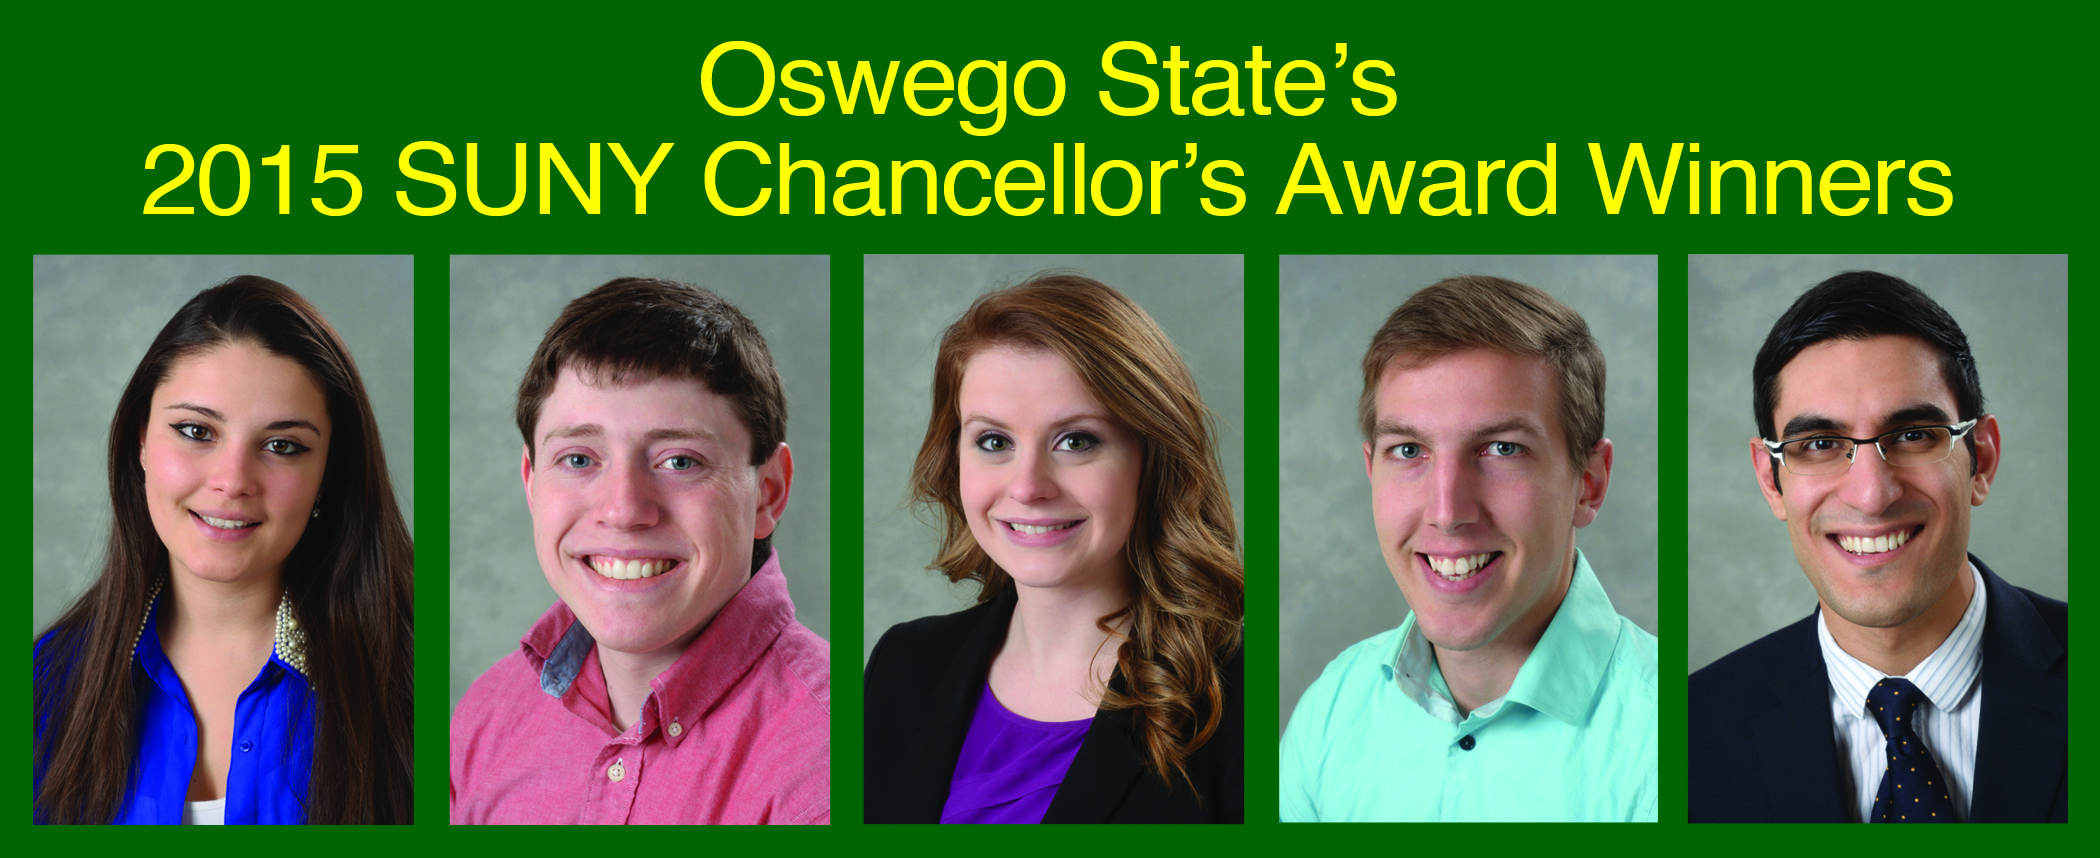 Five Oswego State students receiving SUNY's highest honor from left to right: Dianora DeMarco, Joshua Drake, Molly Matott, David Owens and Eyub Yegen. (Photos provided by Office of Public Affairs)